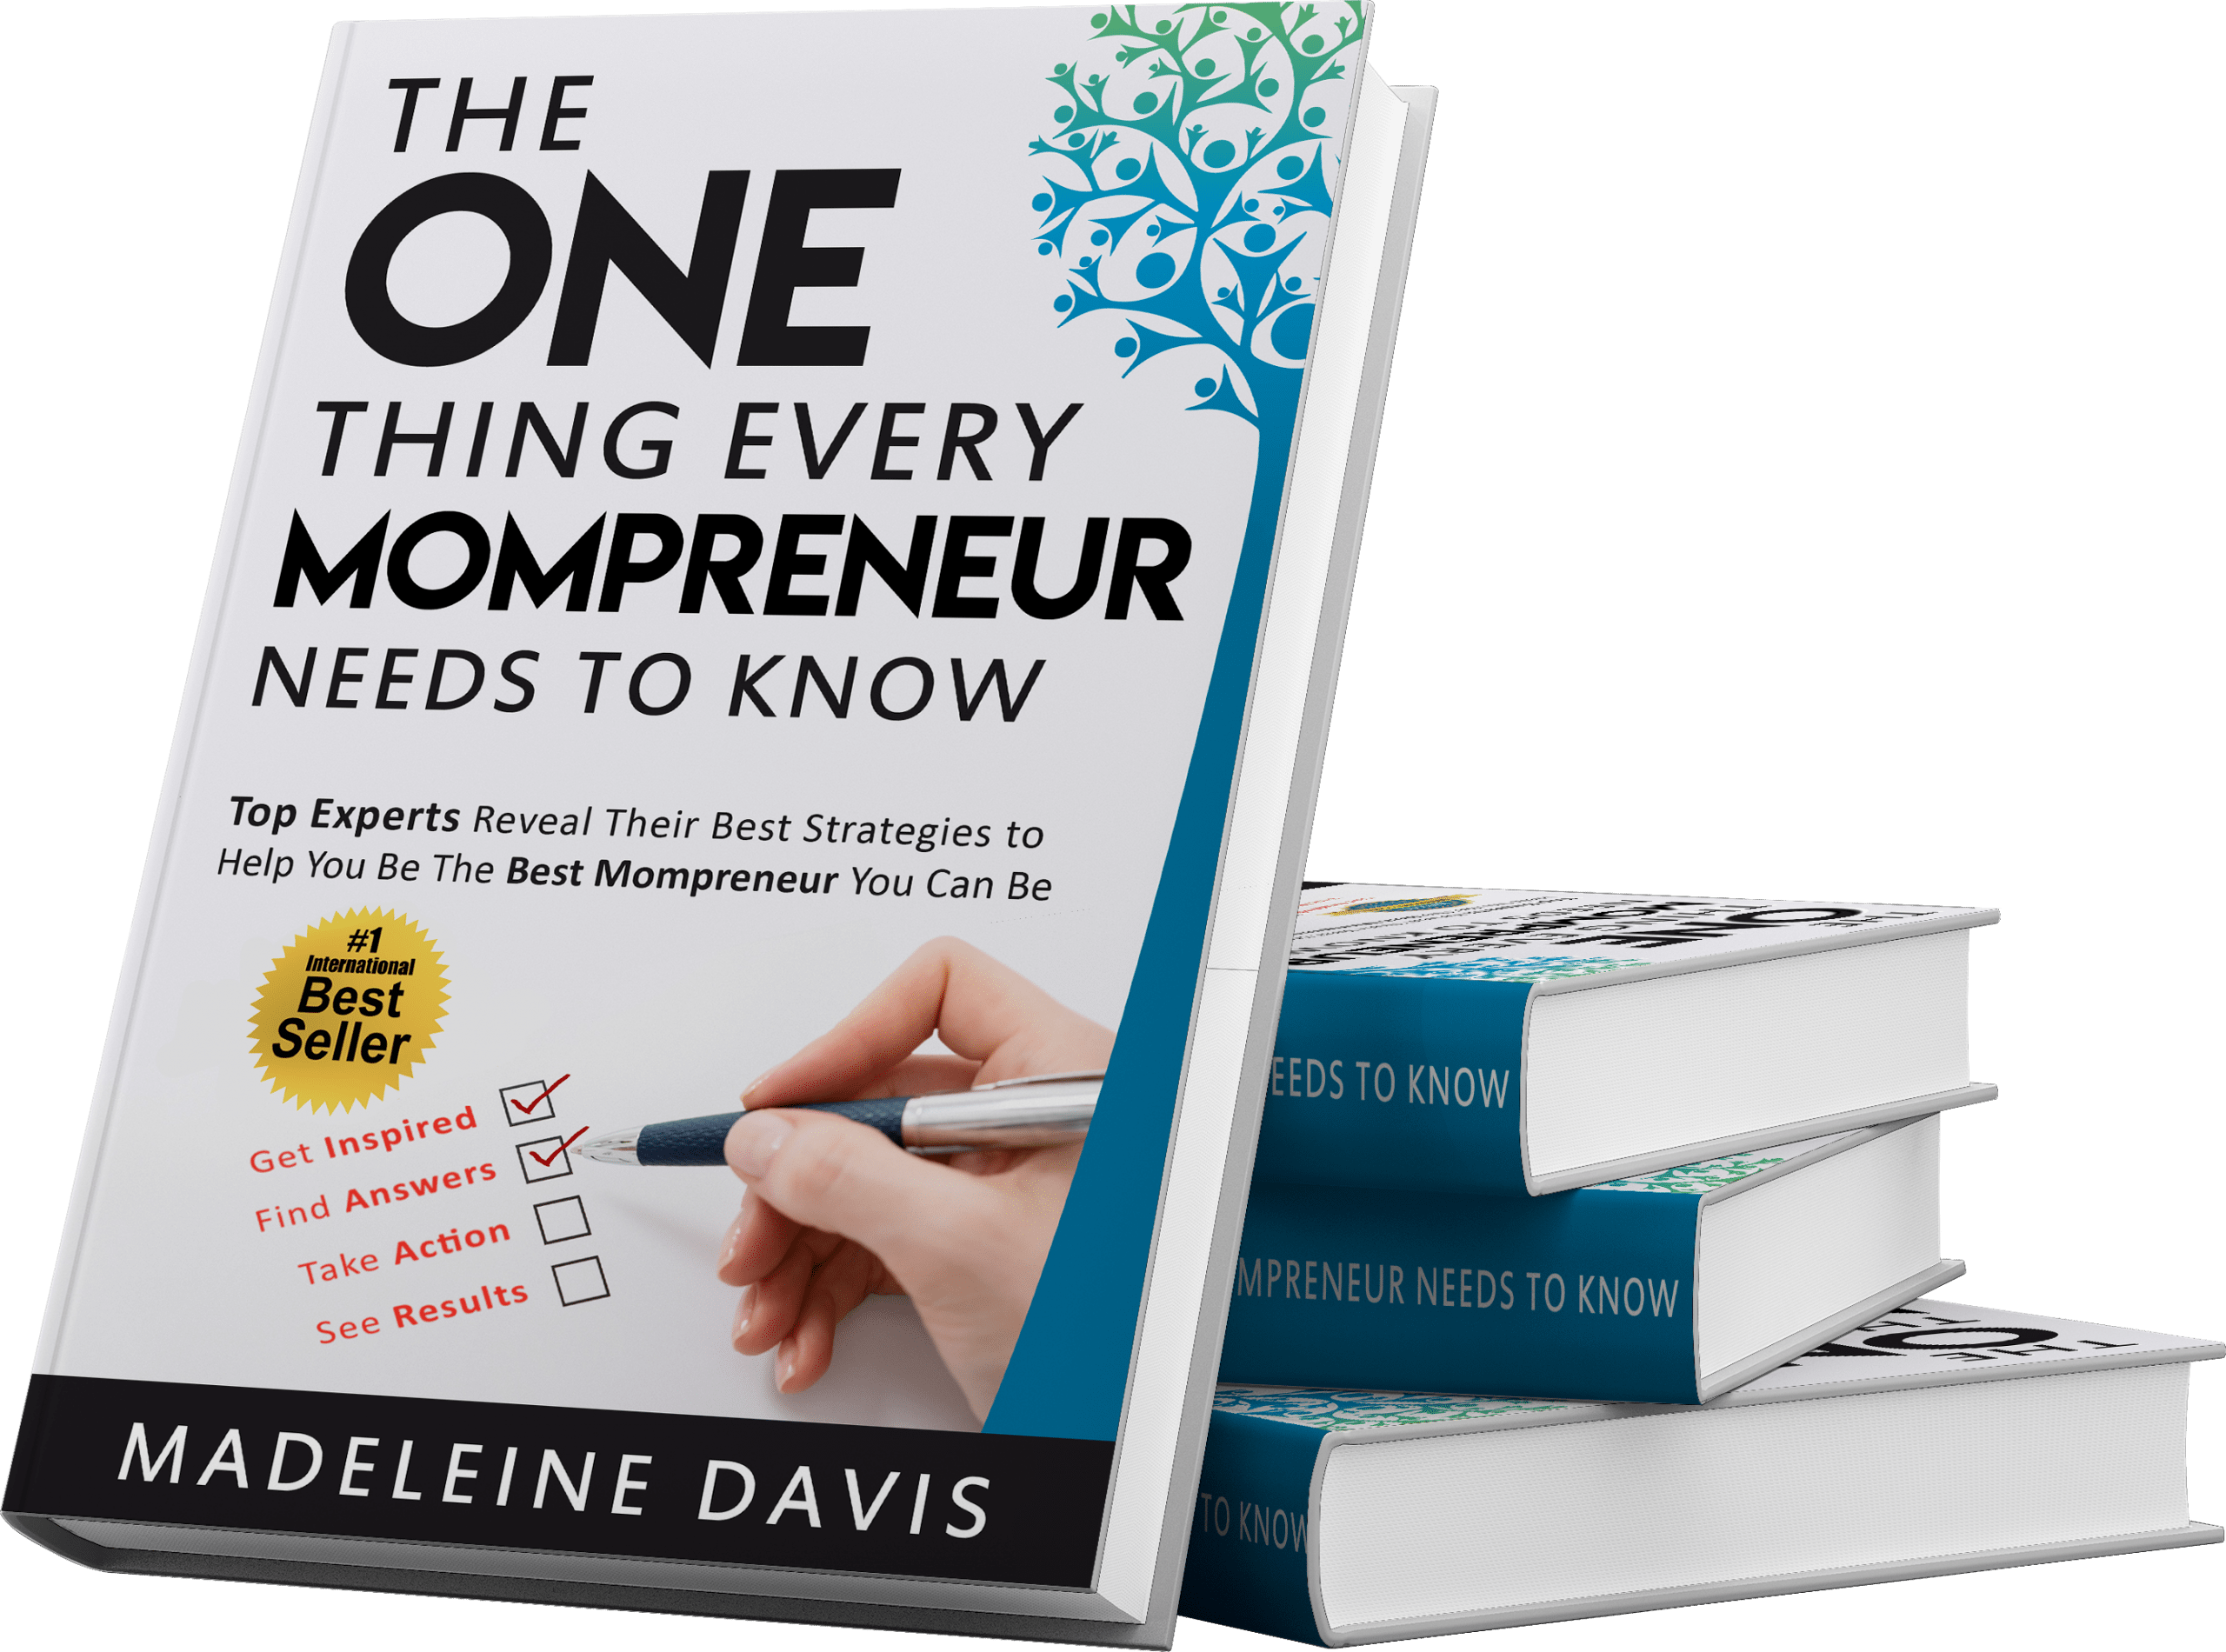 The One Thing Every Mompreneur Needs to Know - Get this book!